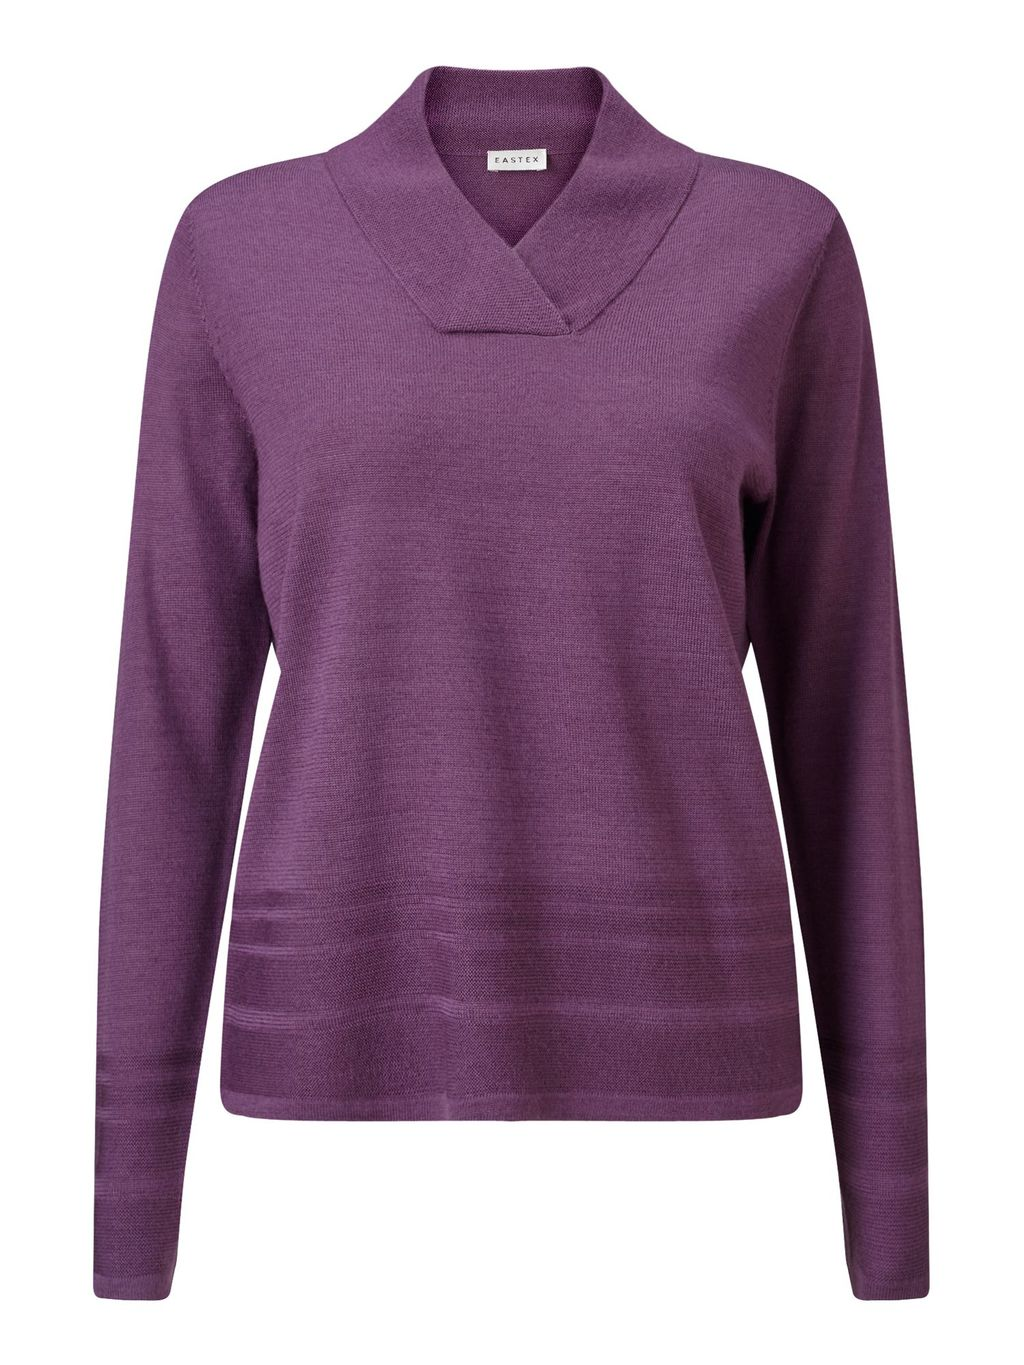 Cross Over Neck Jumper, Purple - neckline: v-neck; pattern: plain; style: standard; predominant colour: purple; occasions: casual, work, creative work; length: standard; fibres: acrylic - mix; fit: standard fit; sleeve length: long sleeve; sleeve style: standard; texture group: knits/crochet; pattern type: knitted - fine stitch; season: s/s 2016; wardrobe: highlight